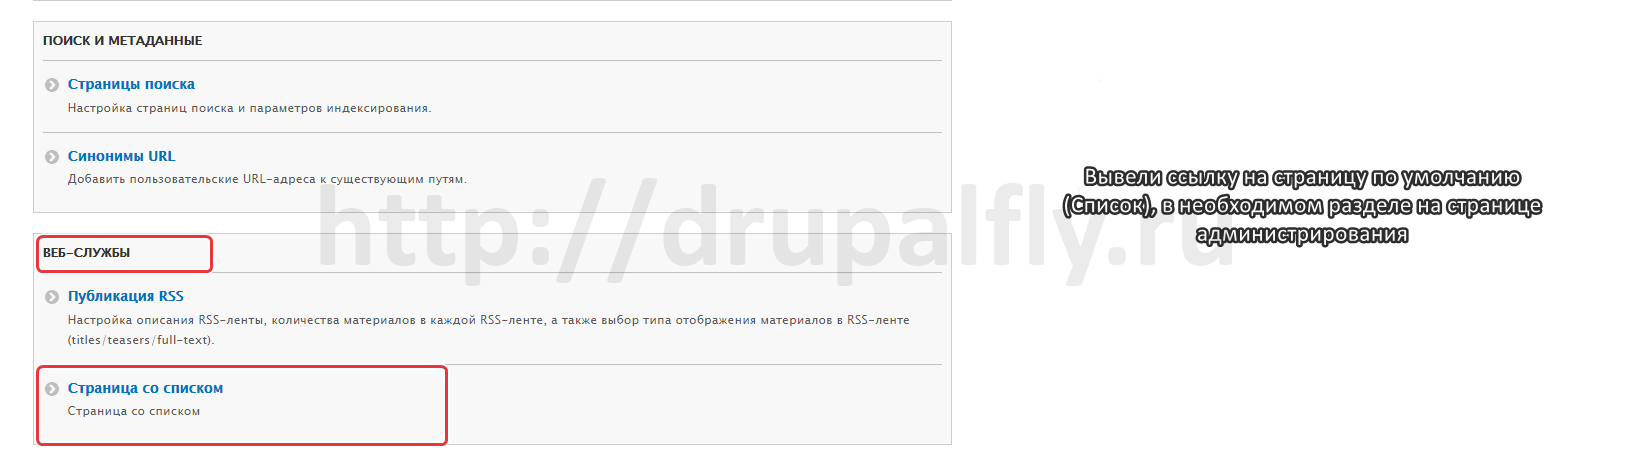 create_administration_page_in_drupal_8_2.png